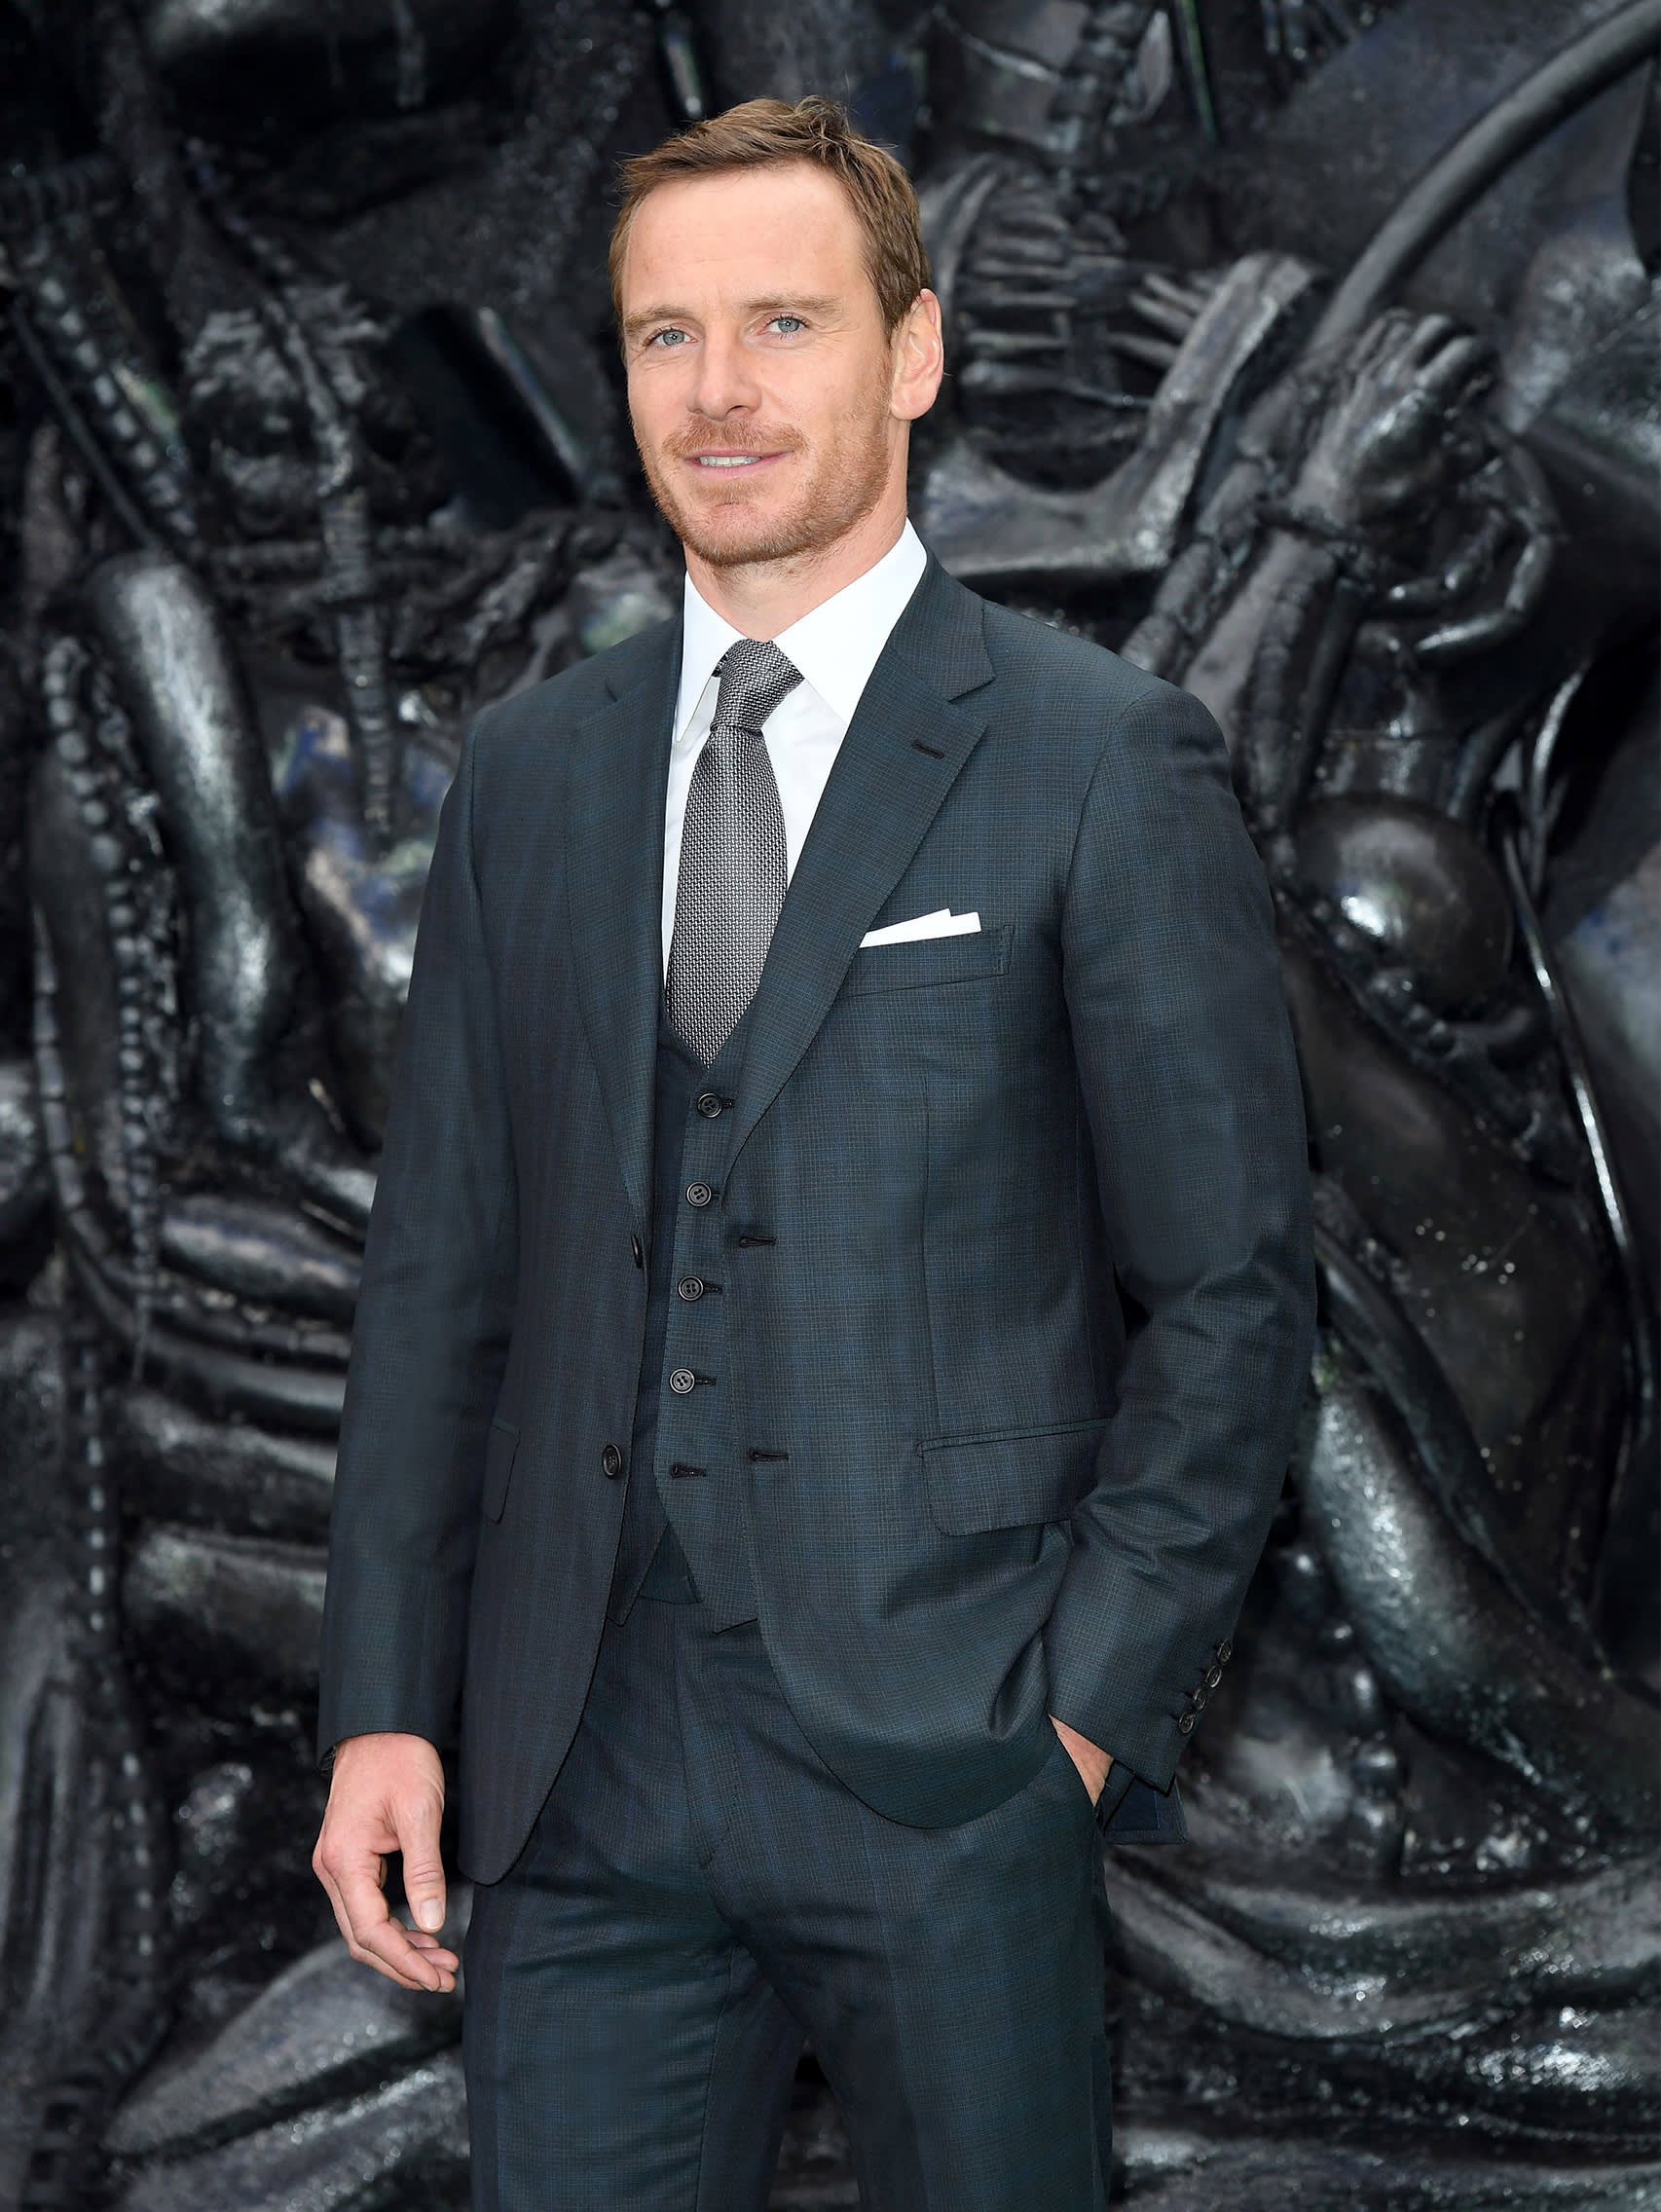 Michael Fassbender wearing a Brioni bespoke dark green three-piece suit